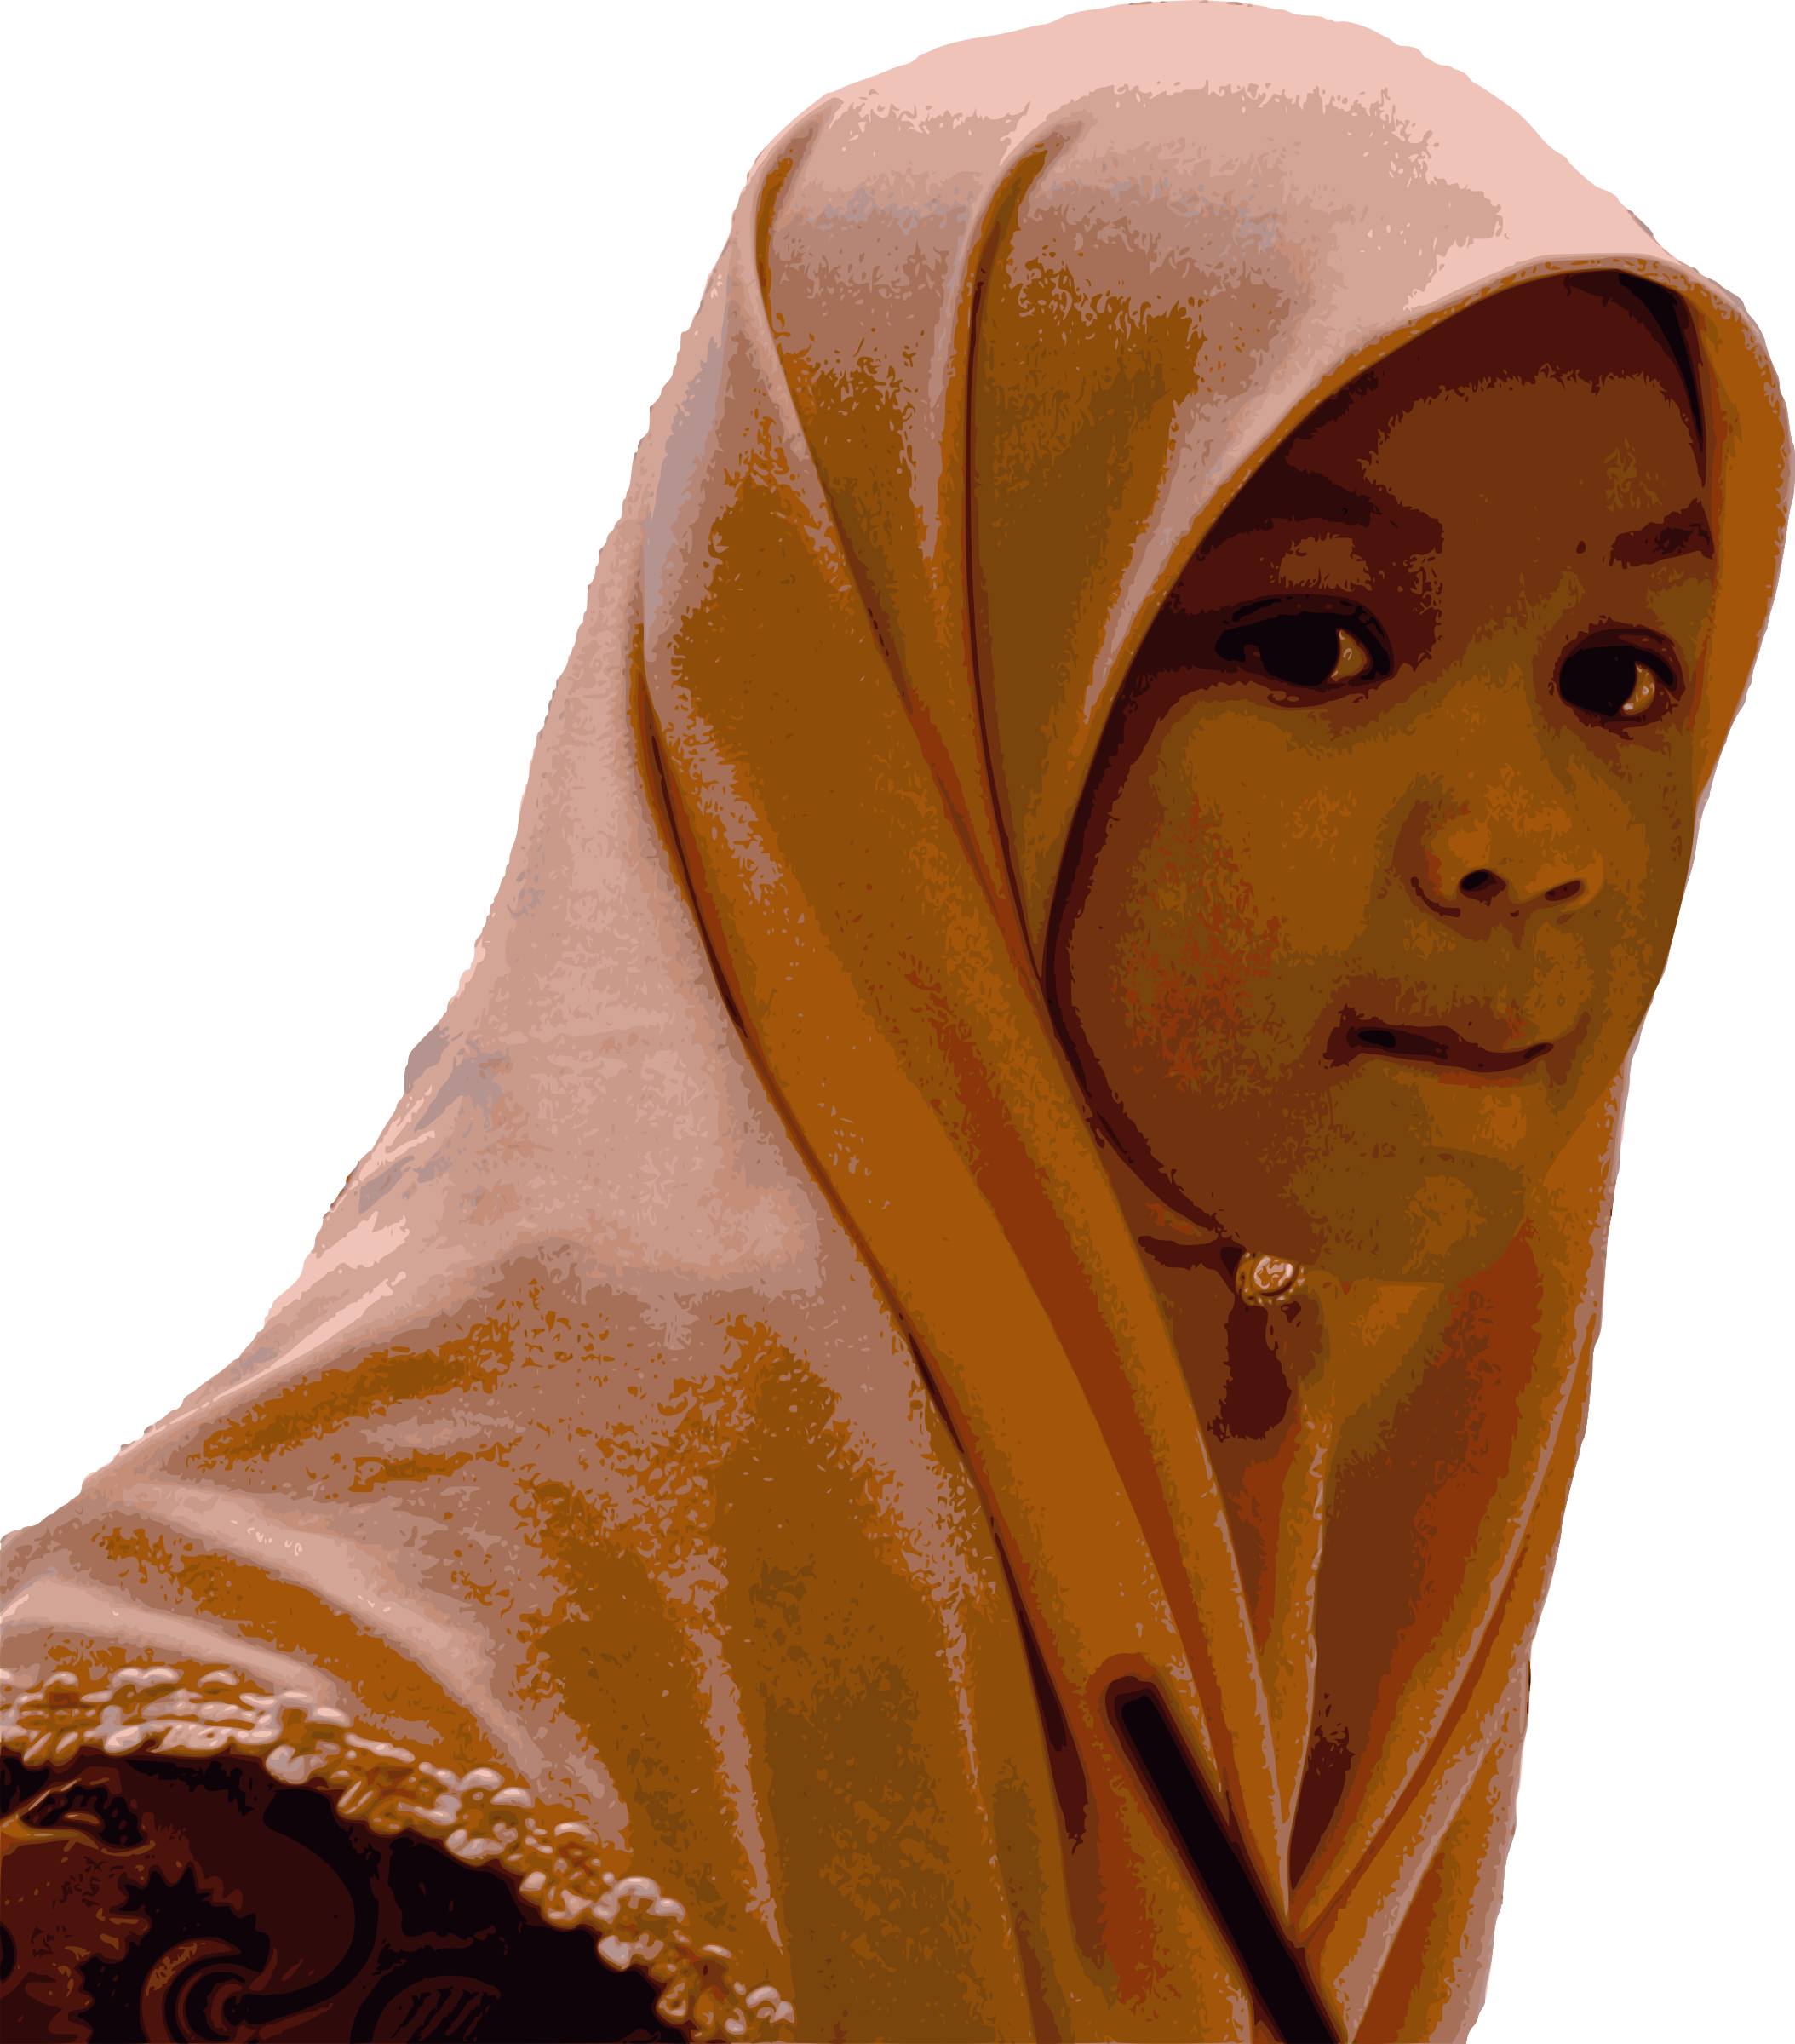 Young Girl in Hijab by j4p4n